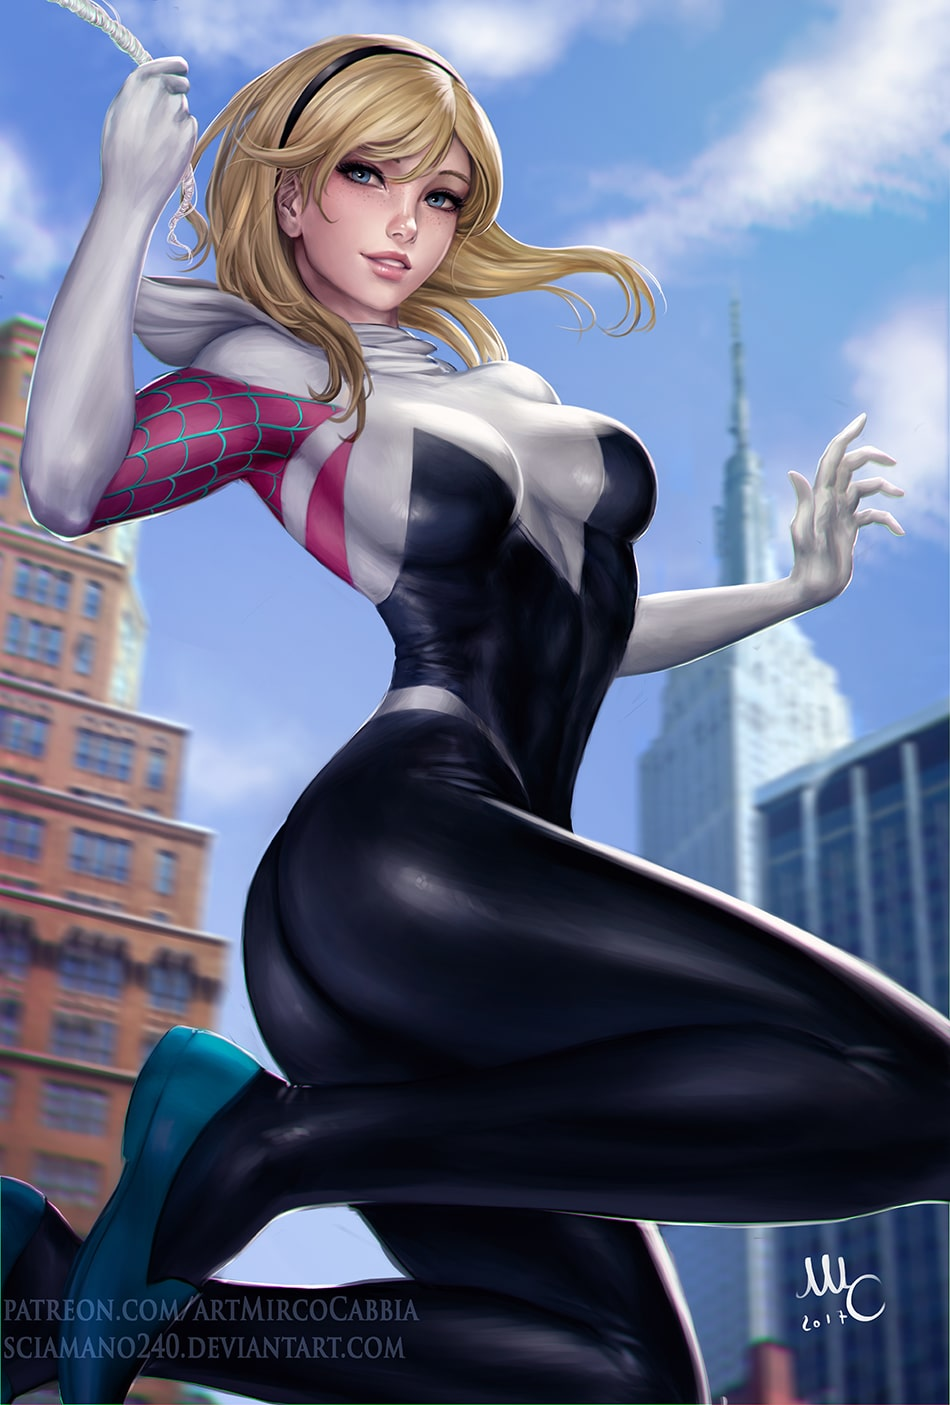 Spider Gwen hot ass pic